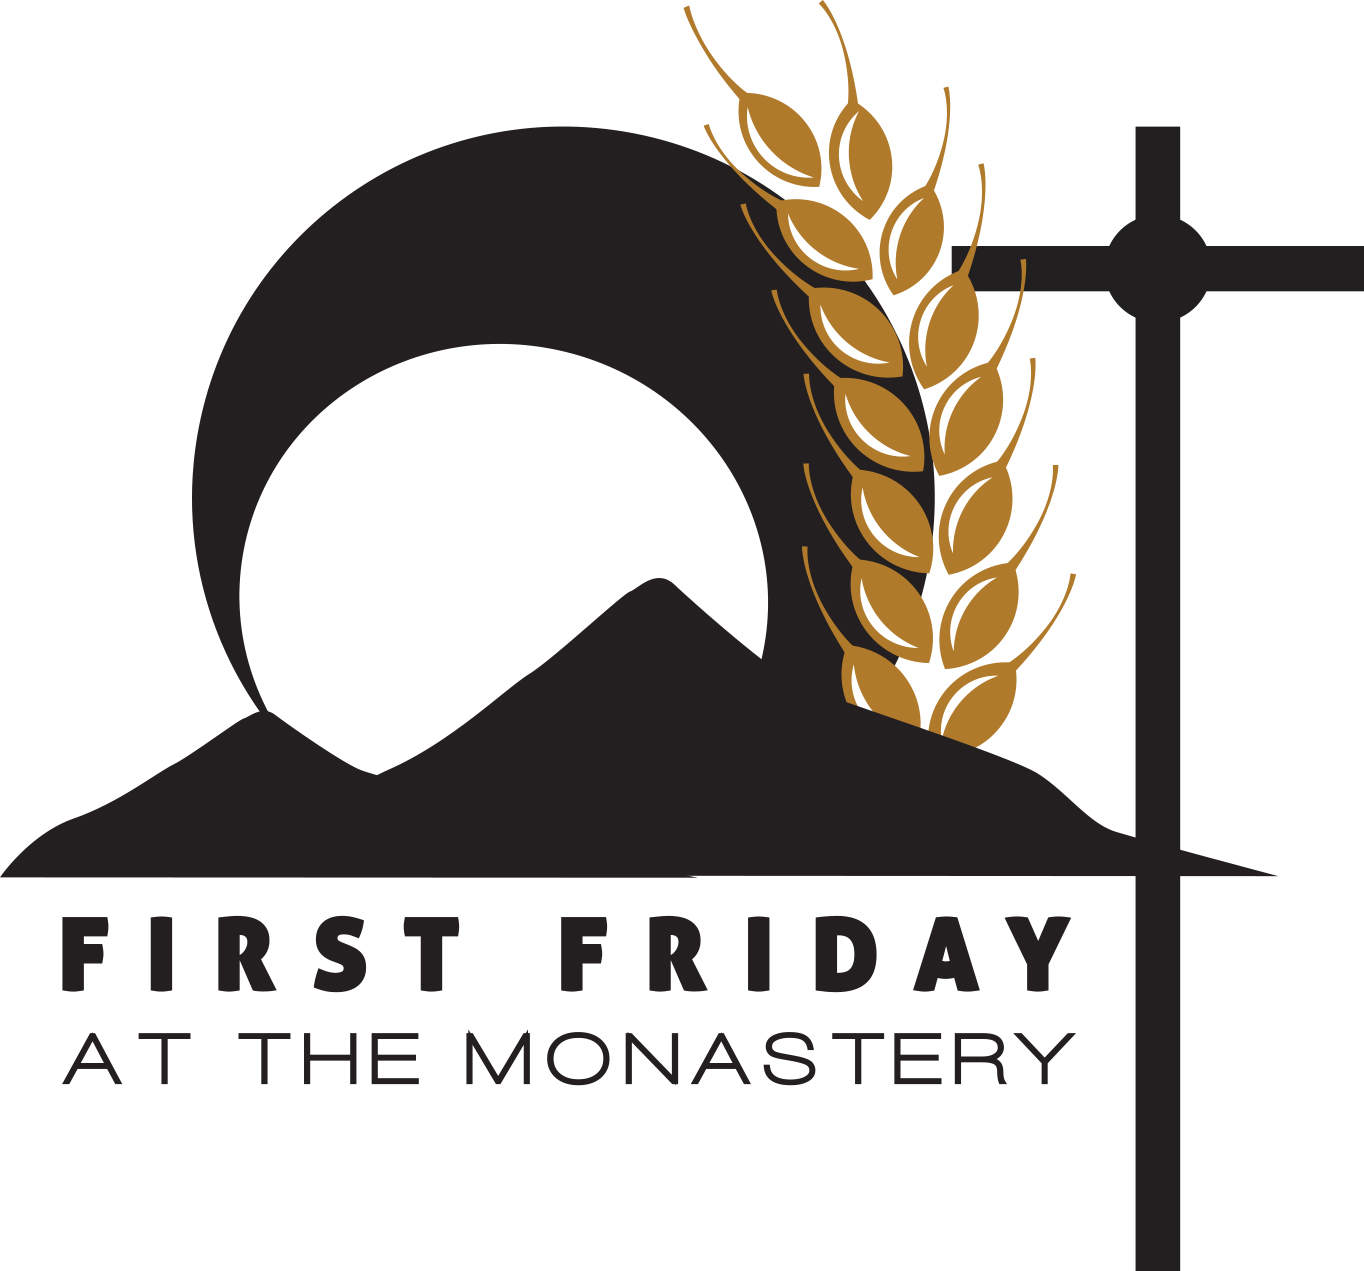 First Friday at the Monastery - APRIL